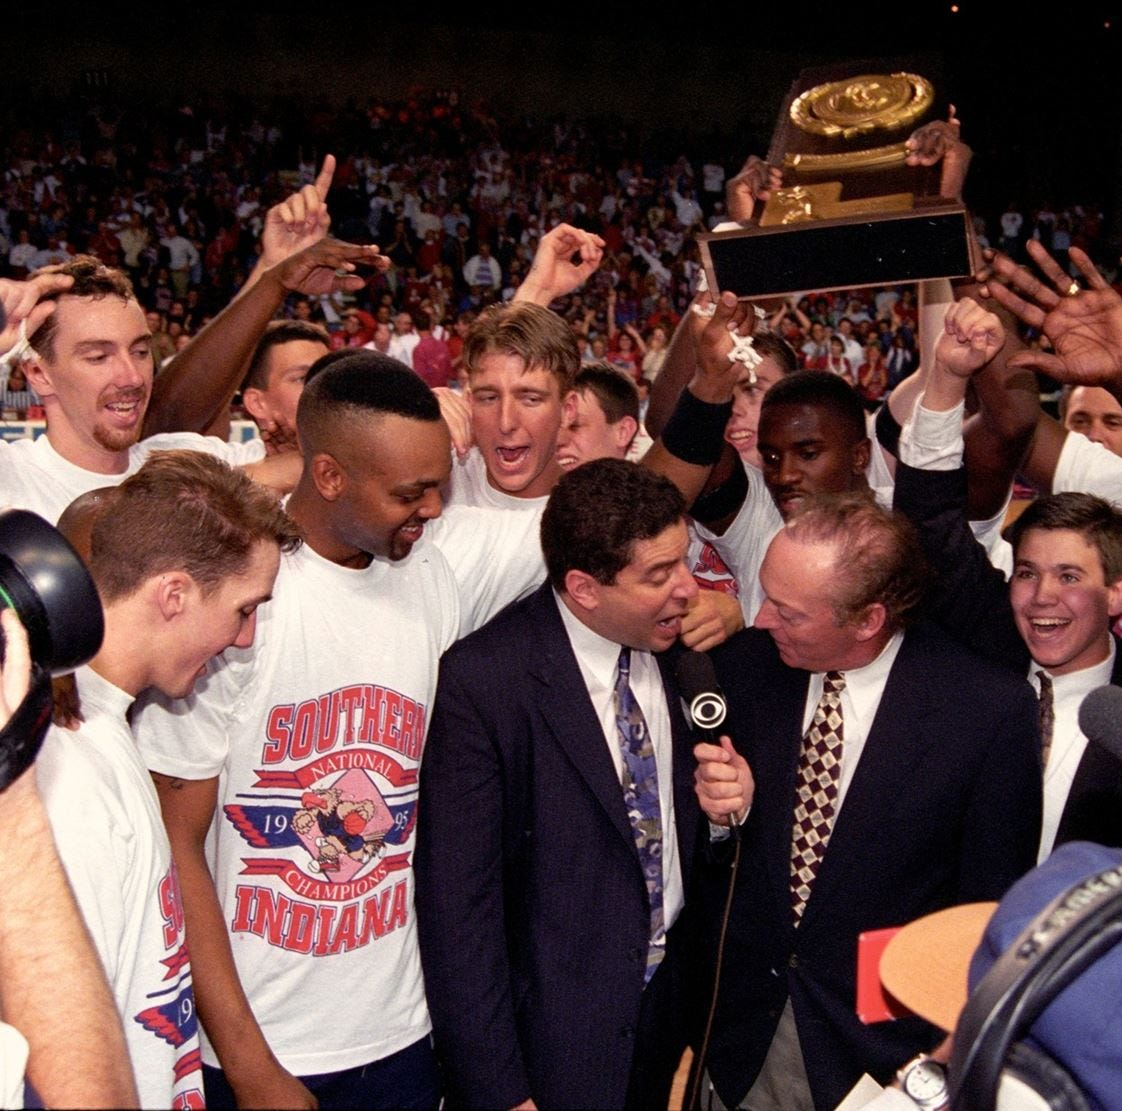 USI basketball alumni share memories from previous Elite Eight trips